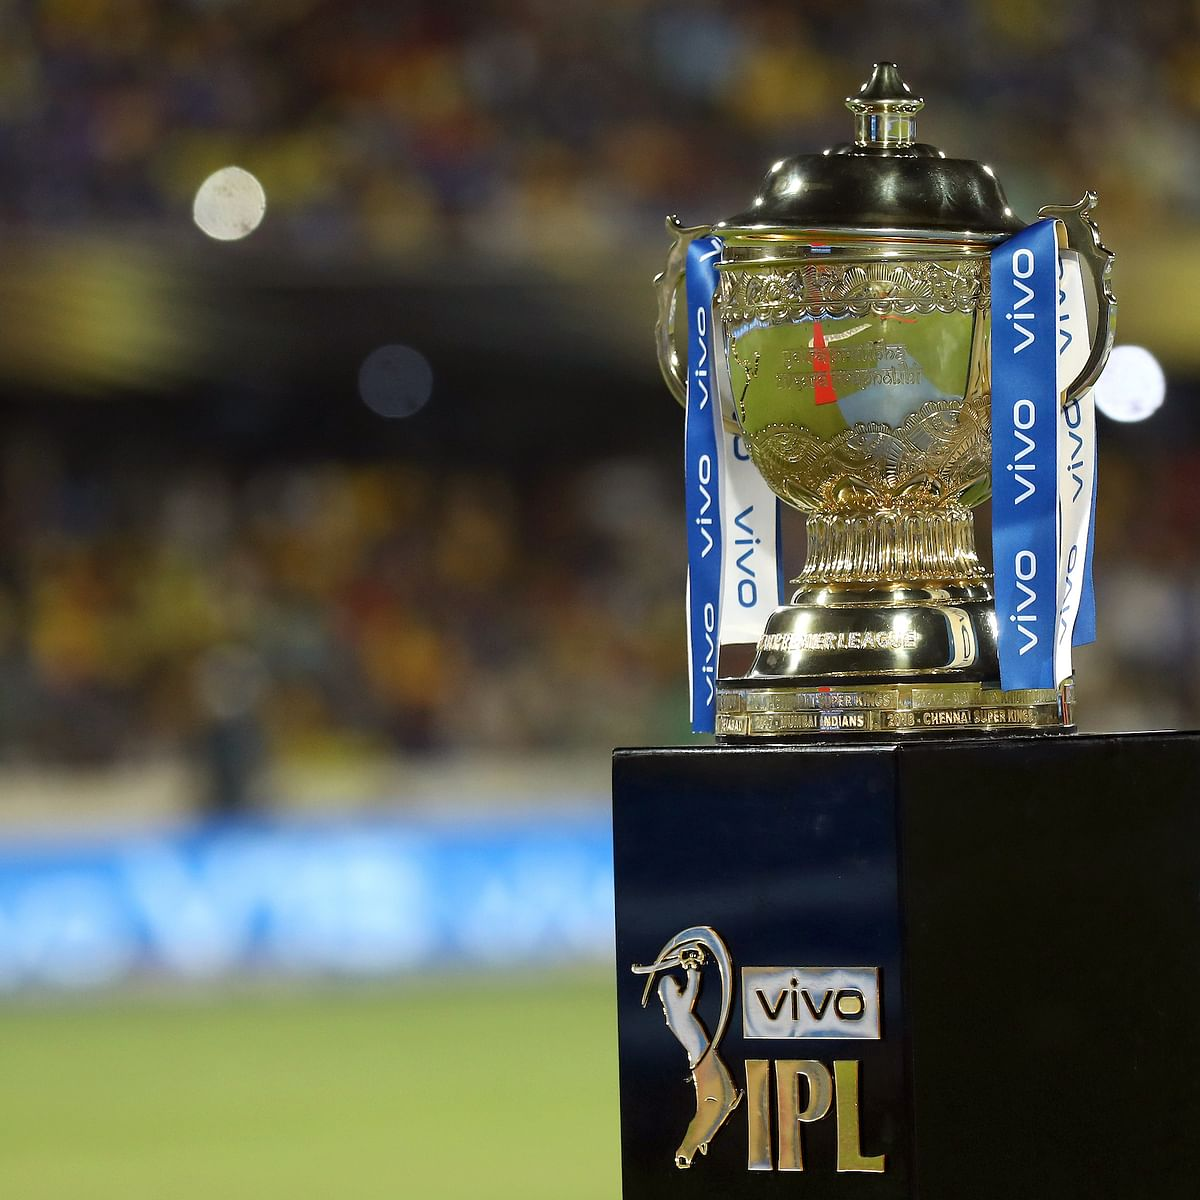 No obstruction for IPL 2021; Maharashtra govt allows teams to practice post 8 pm at Wankhede Stadium